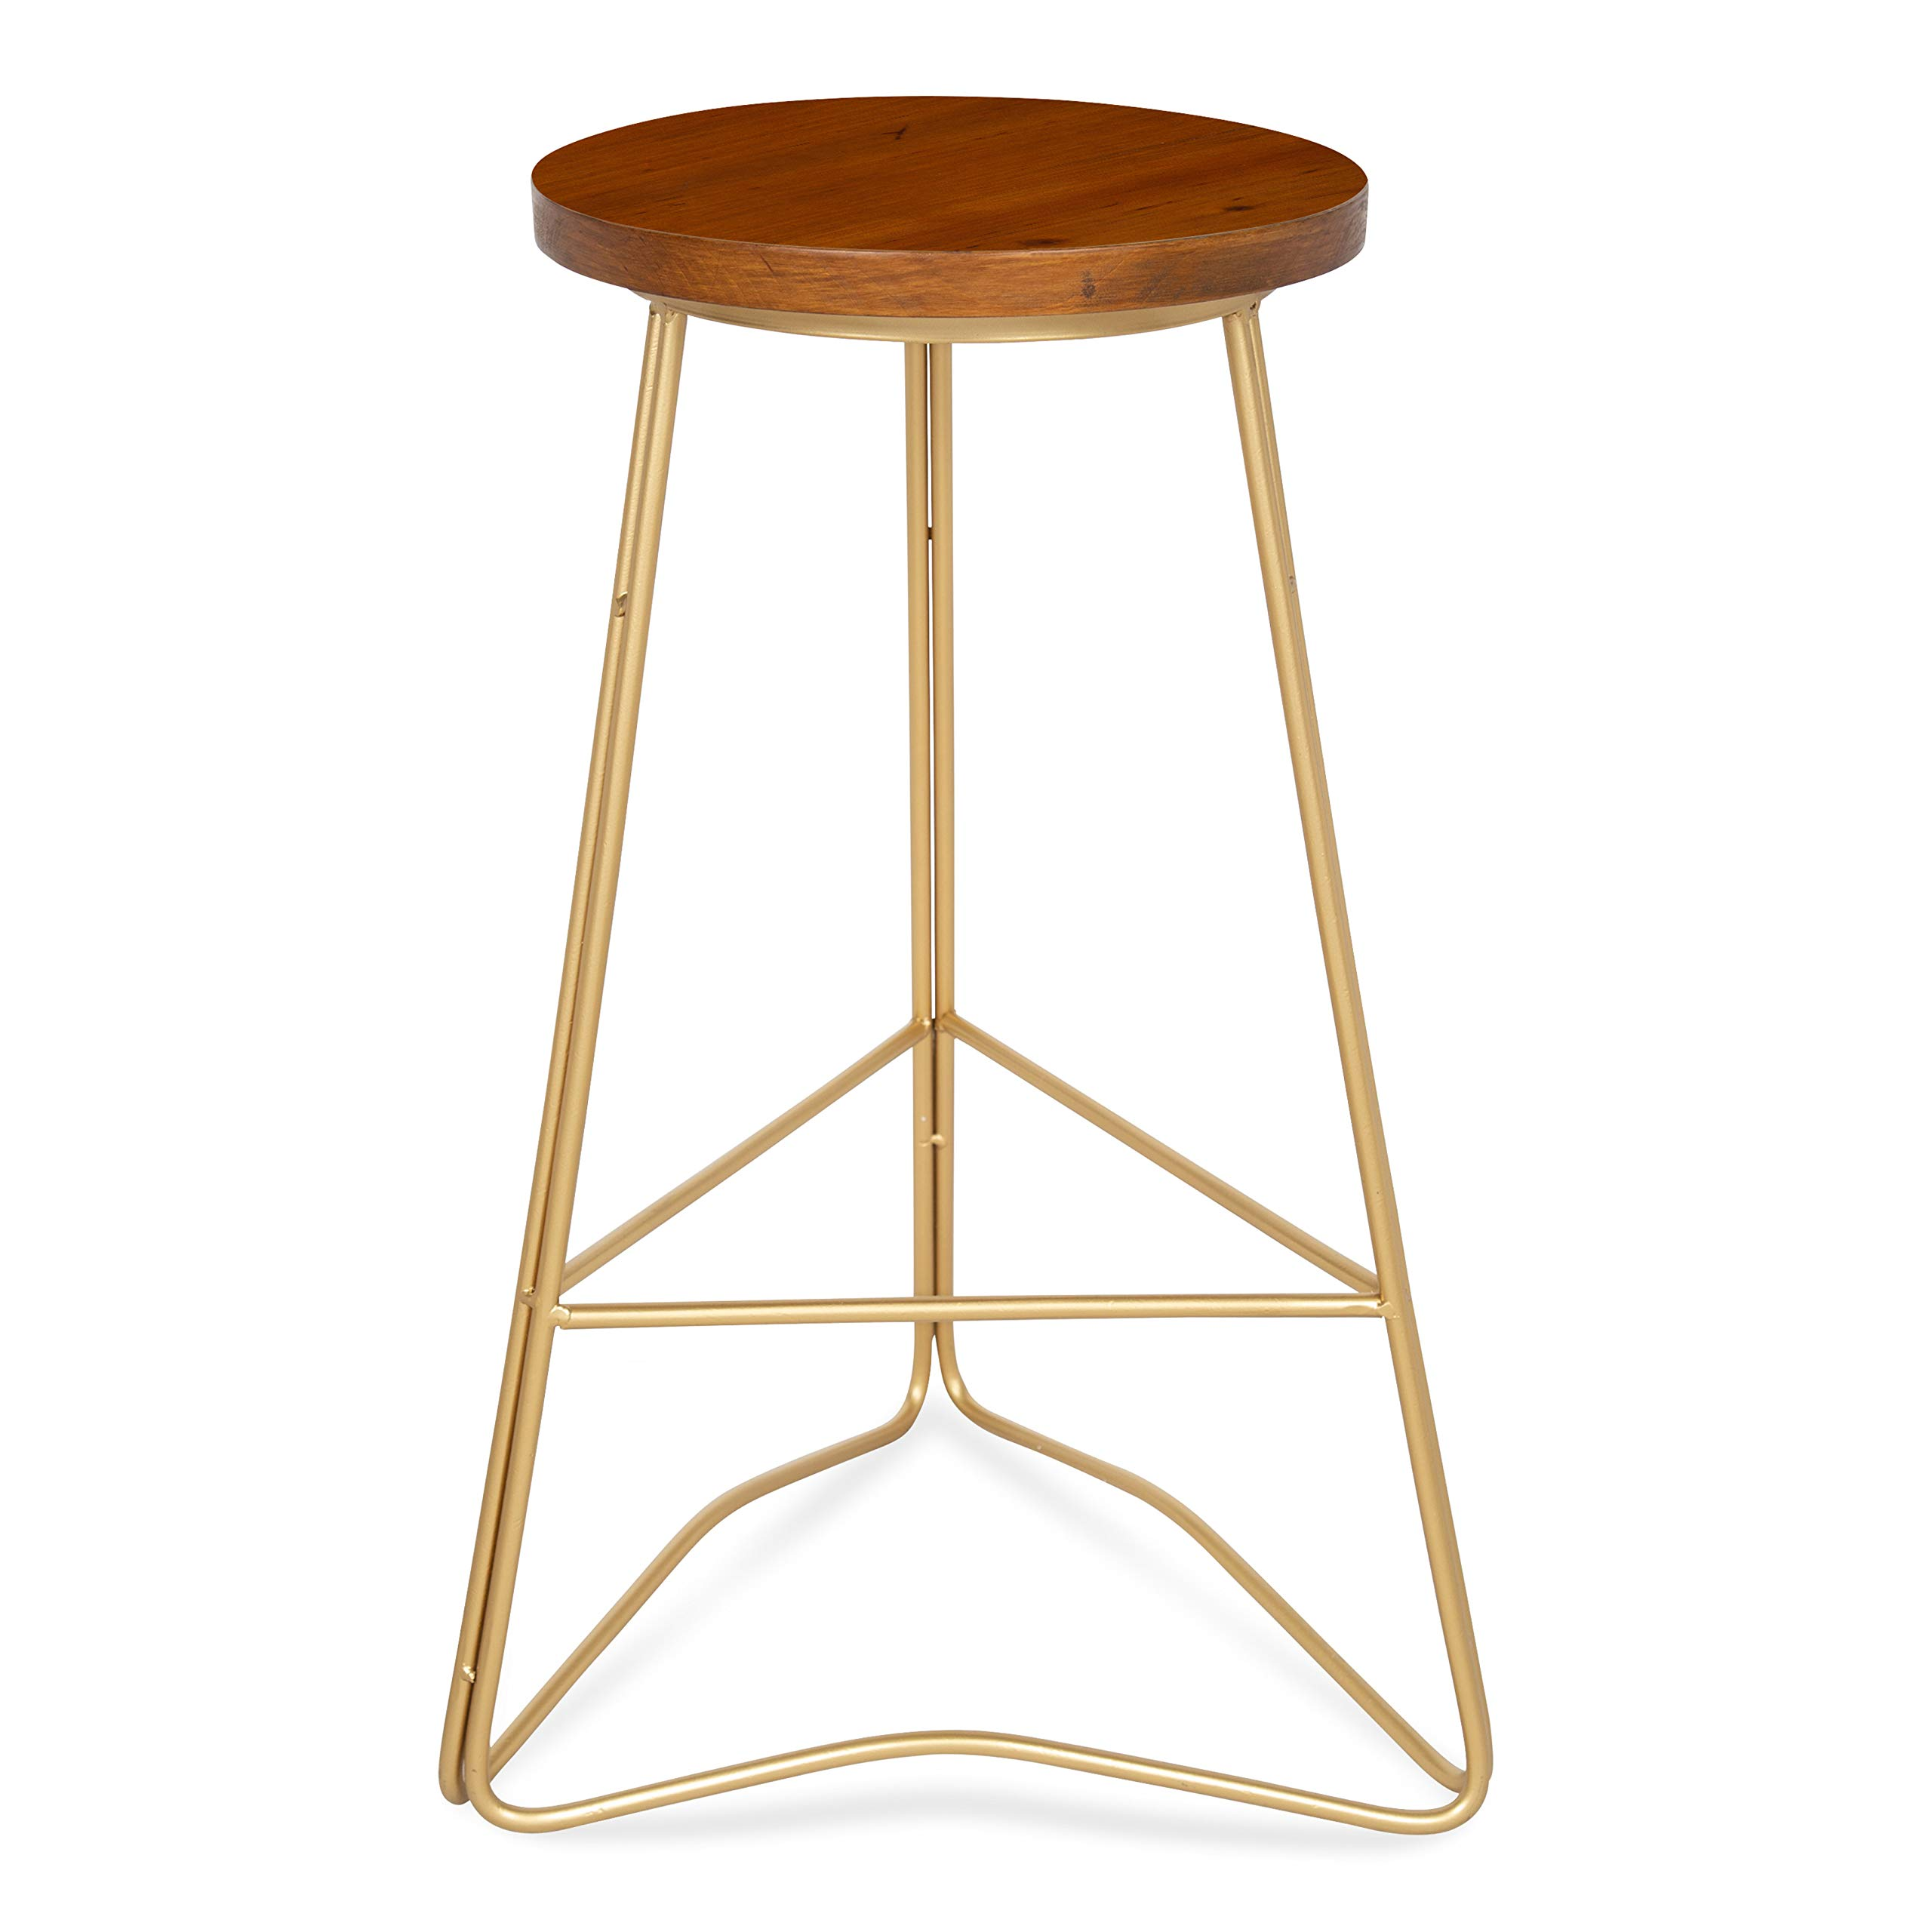 Kate and Laurel Godwin Midcentury Modern Backless Counter-Height Bar Stool, Gold Metal Base with Walnut Finish Seat by Kate and Laurel